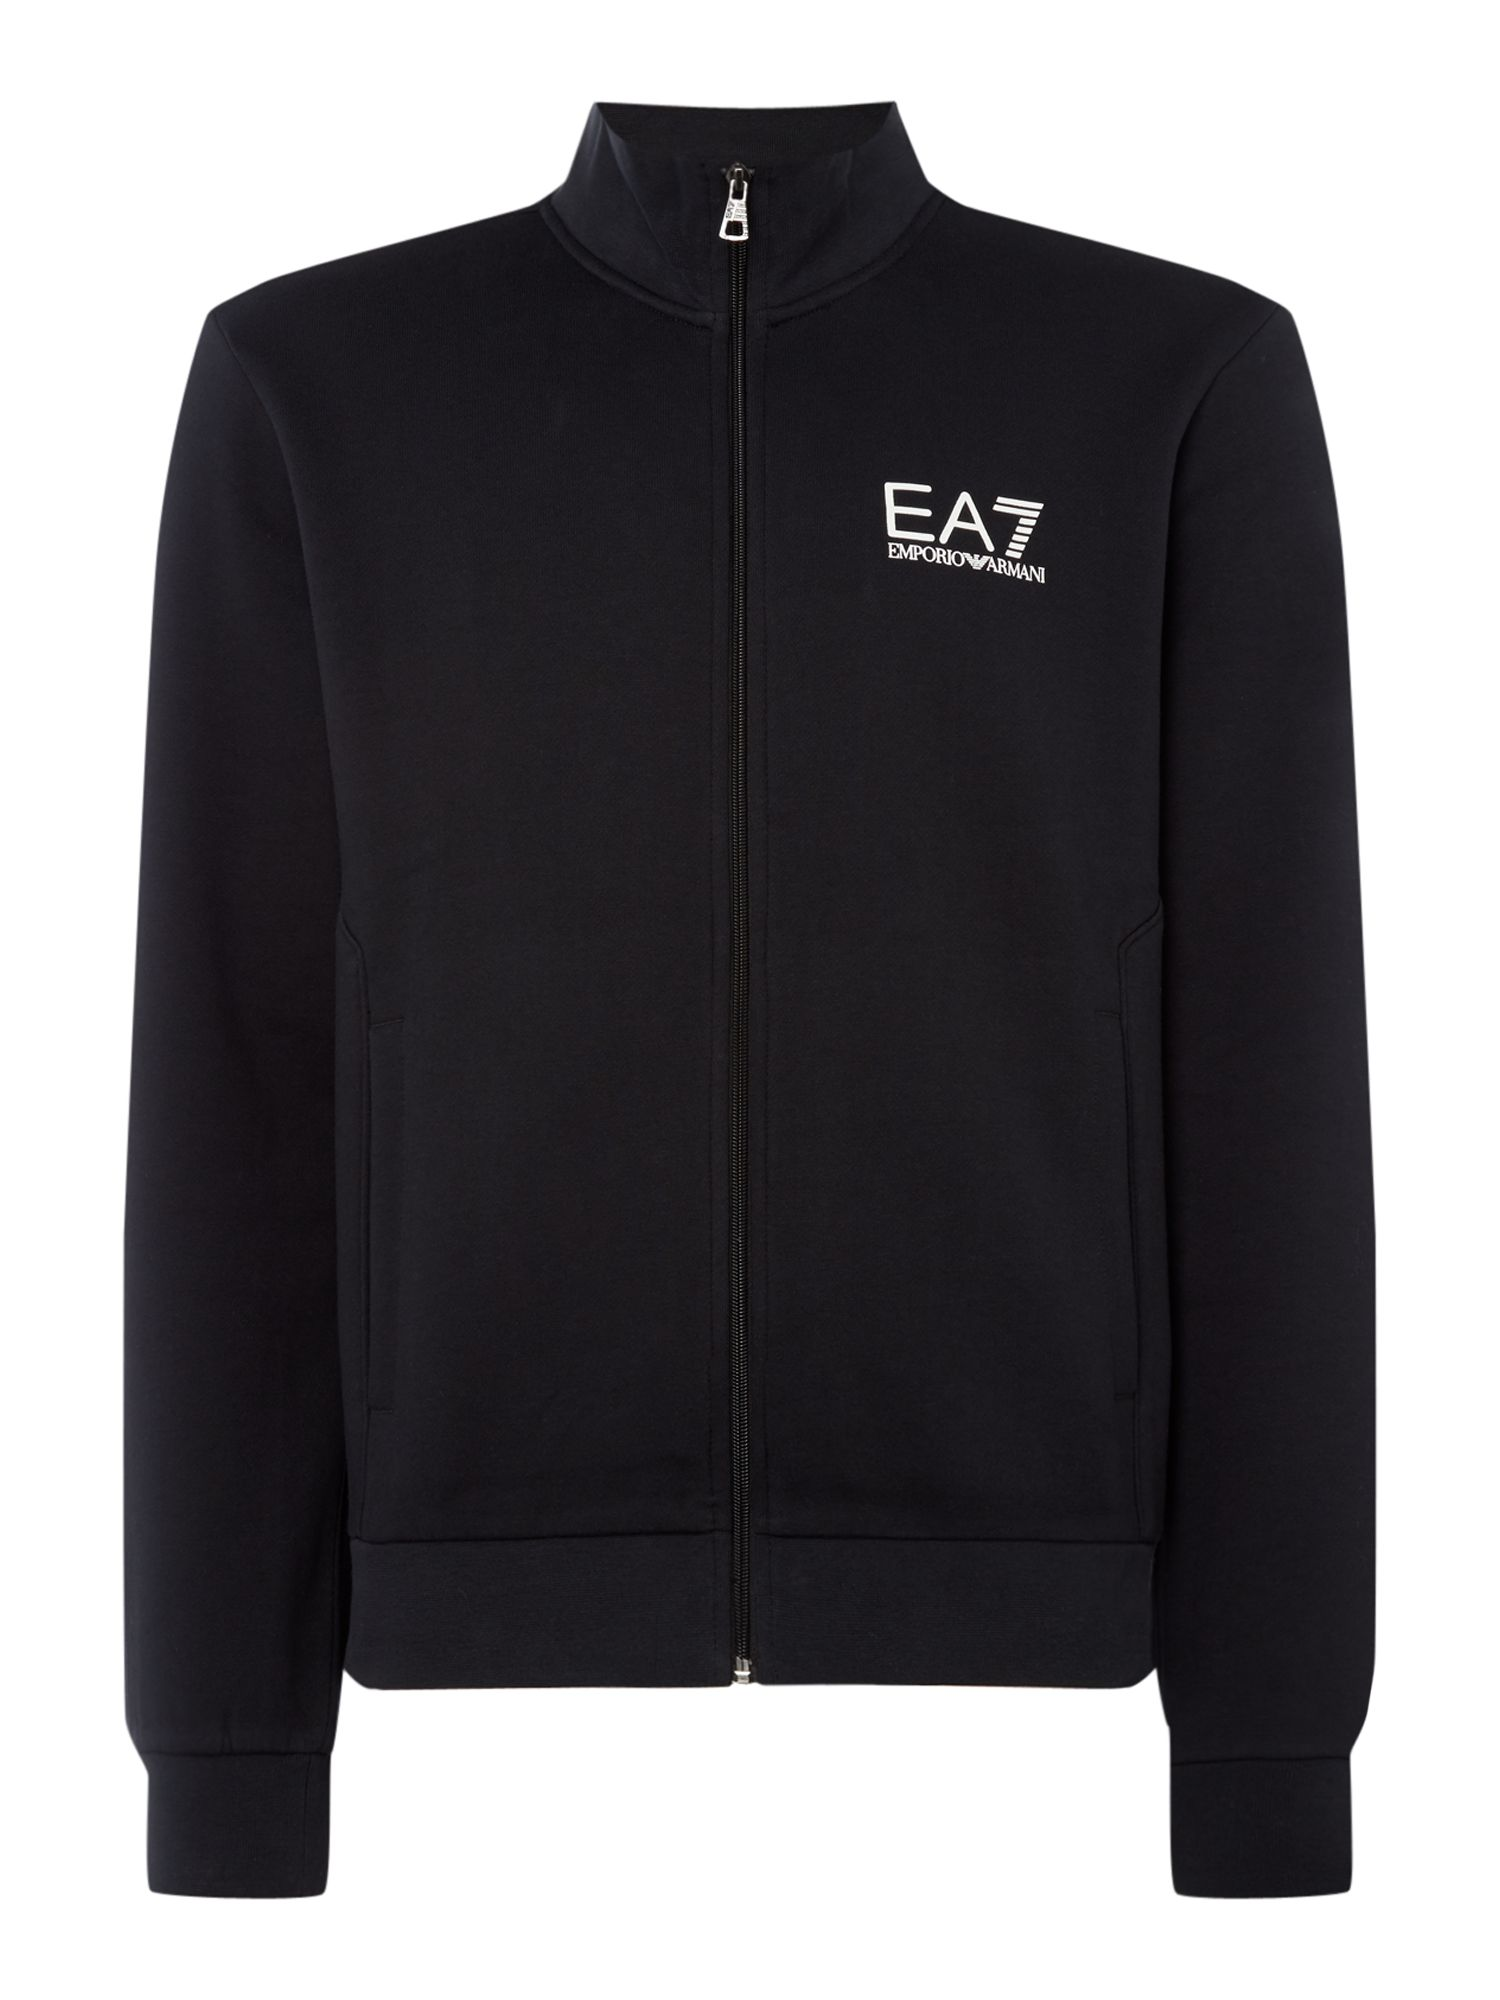 Men's EA7 Core ID funnel neck, Black